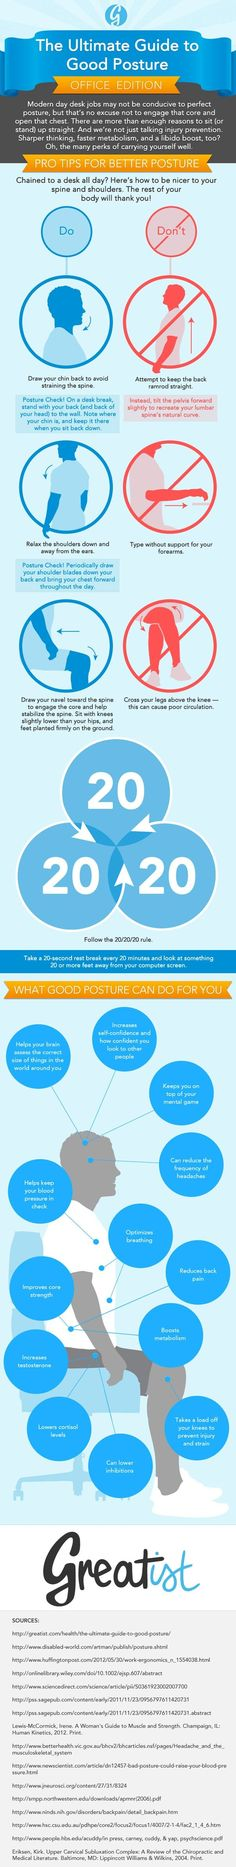 Ultimate Guide to Good Posture at Work [Infographic] http://greatist.com/health/ultimate-guide-good-posture-work-infographic